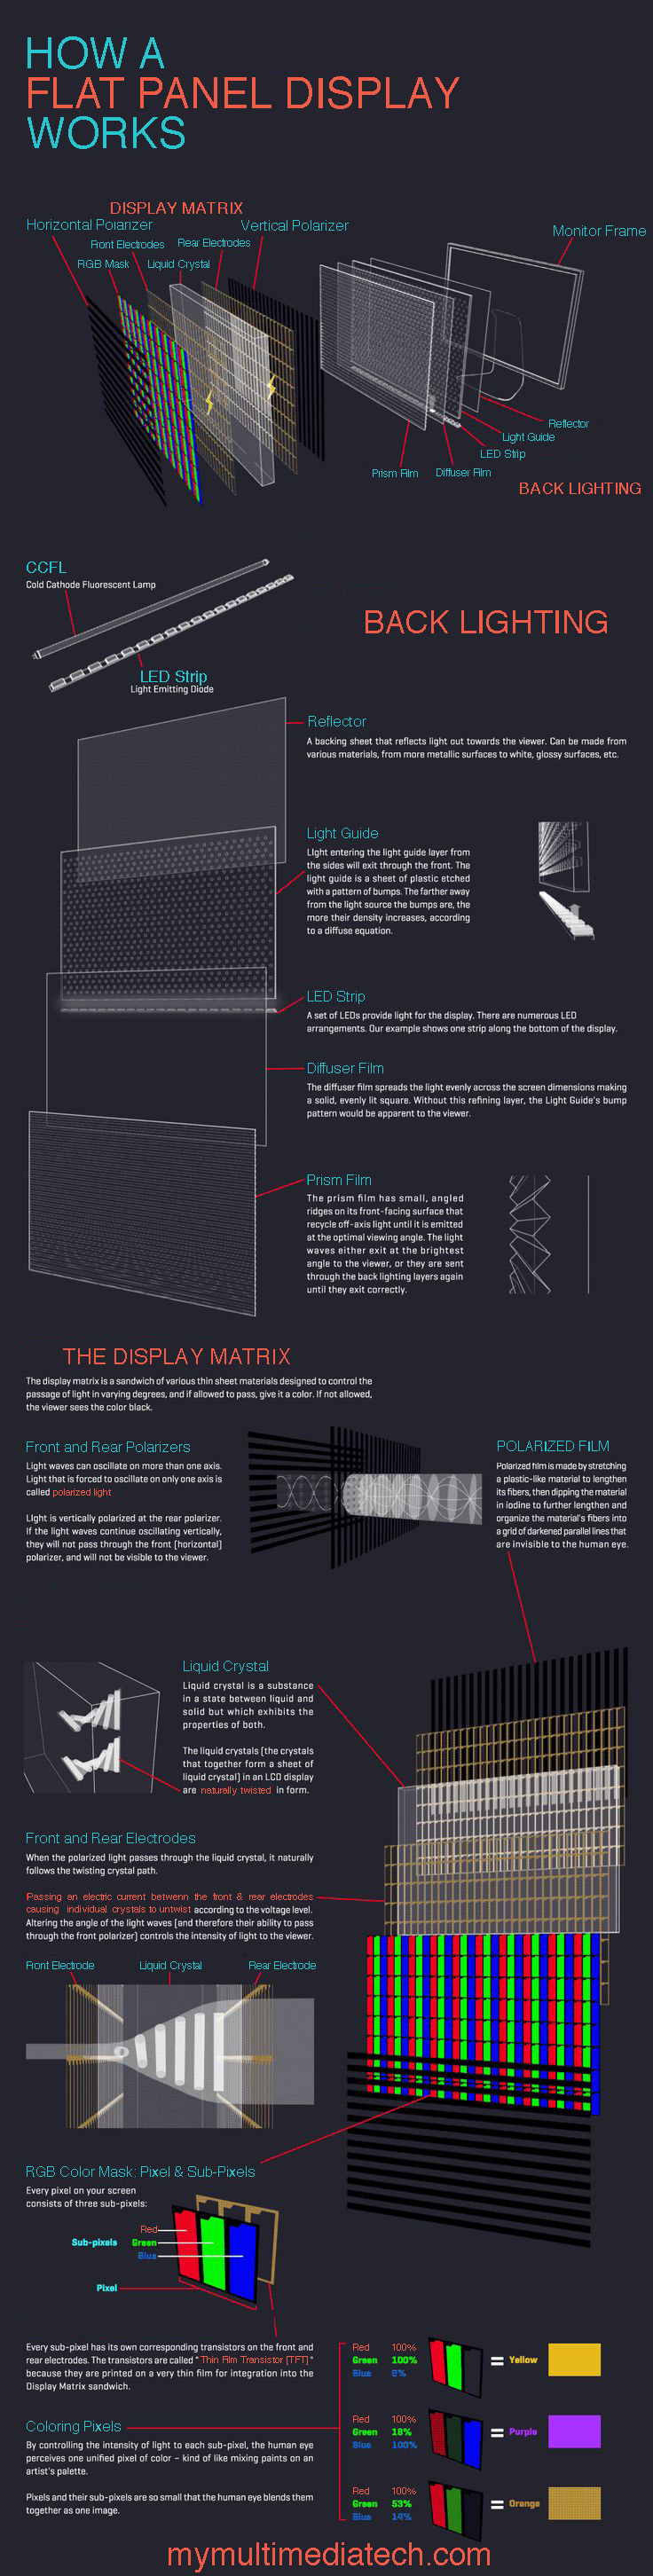 How a Flat Panel Display Works Infographic